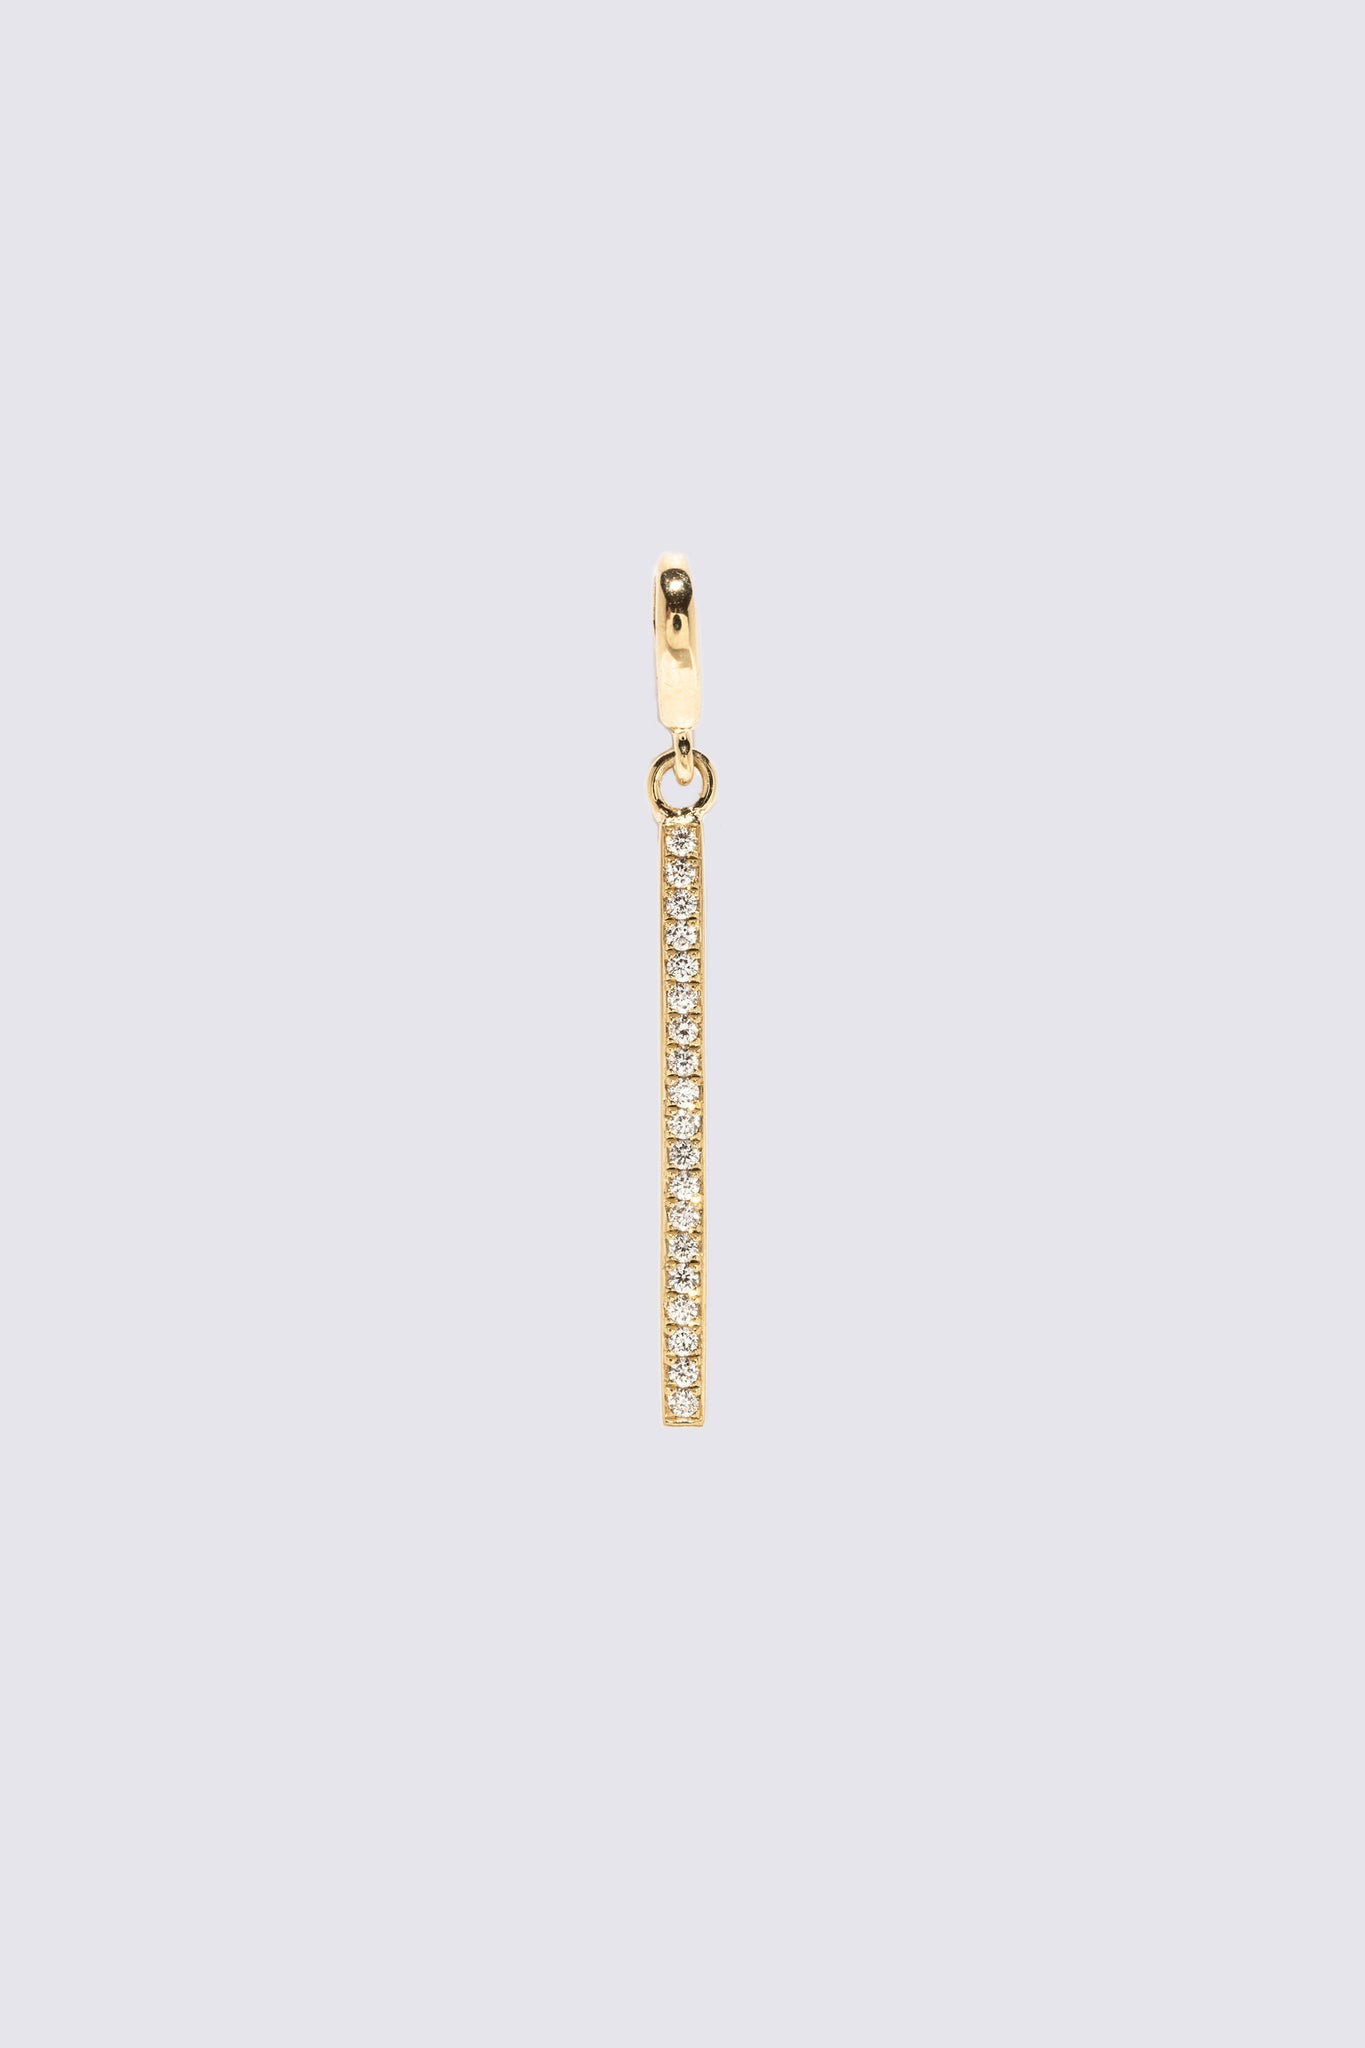 AZLEE - Light Beam Diamond Charm, Gold